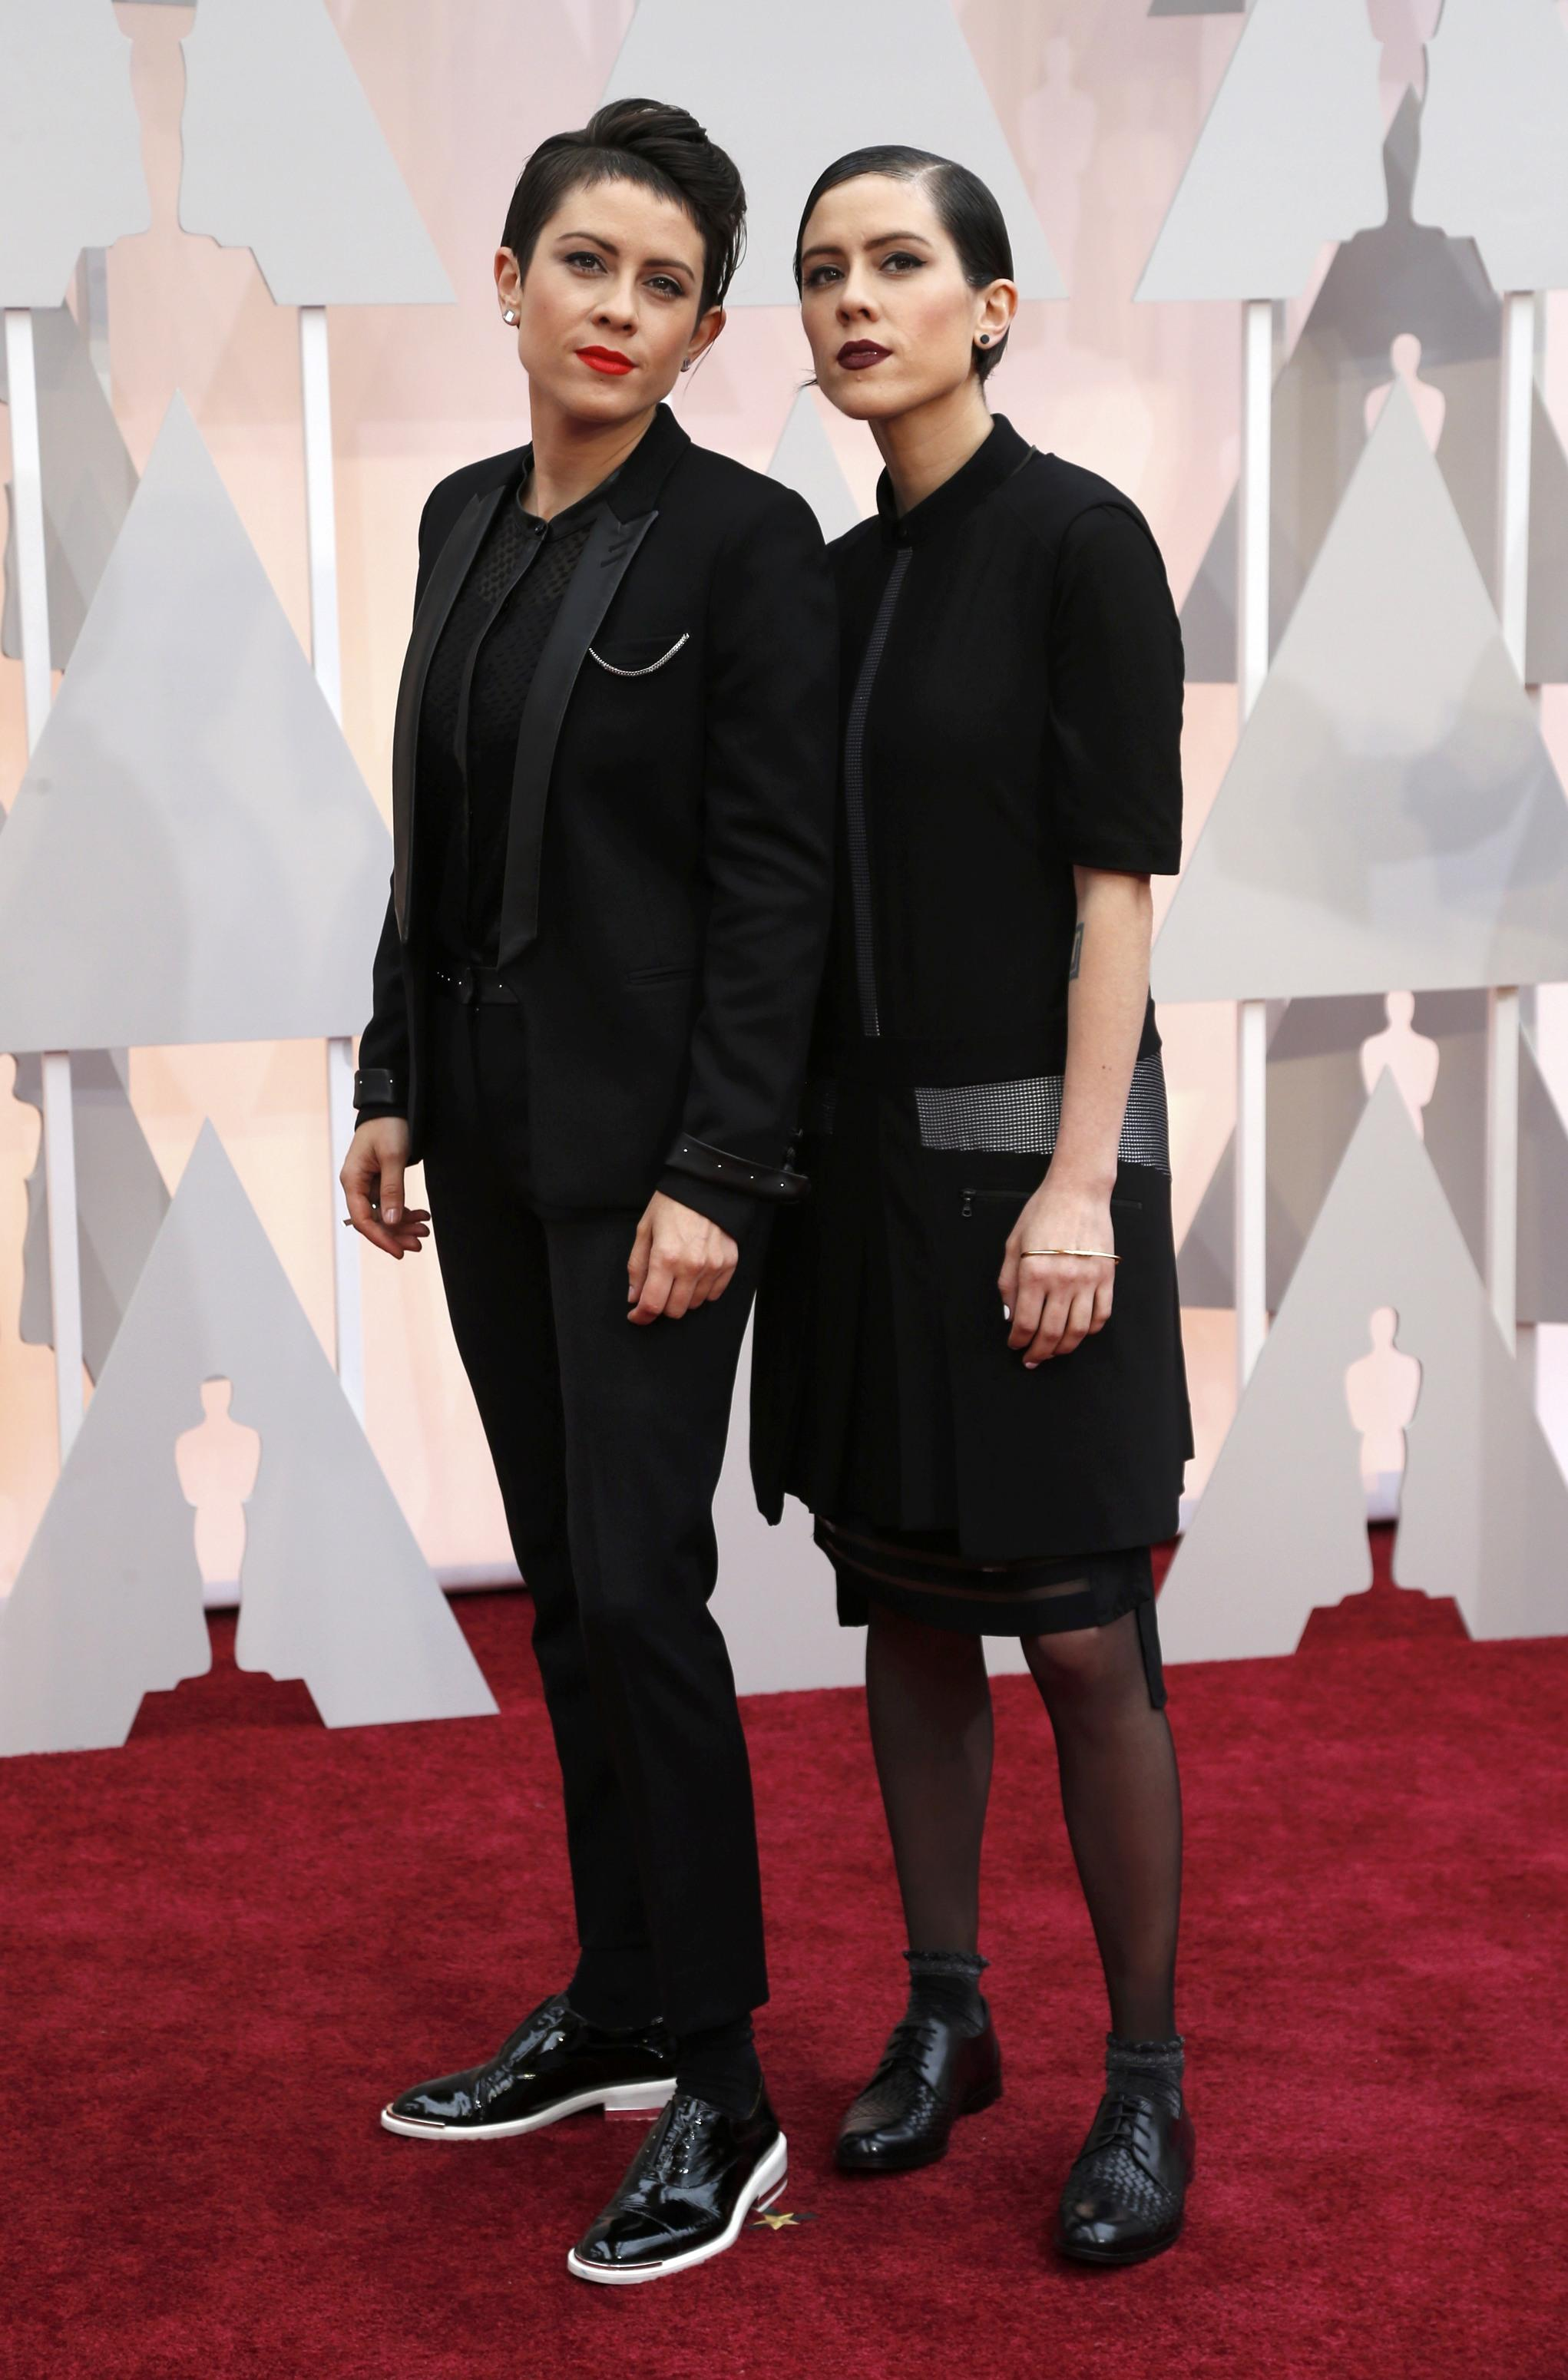 Oscars 2015 Red Carpet Photos Of Celebrities Arriving At